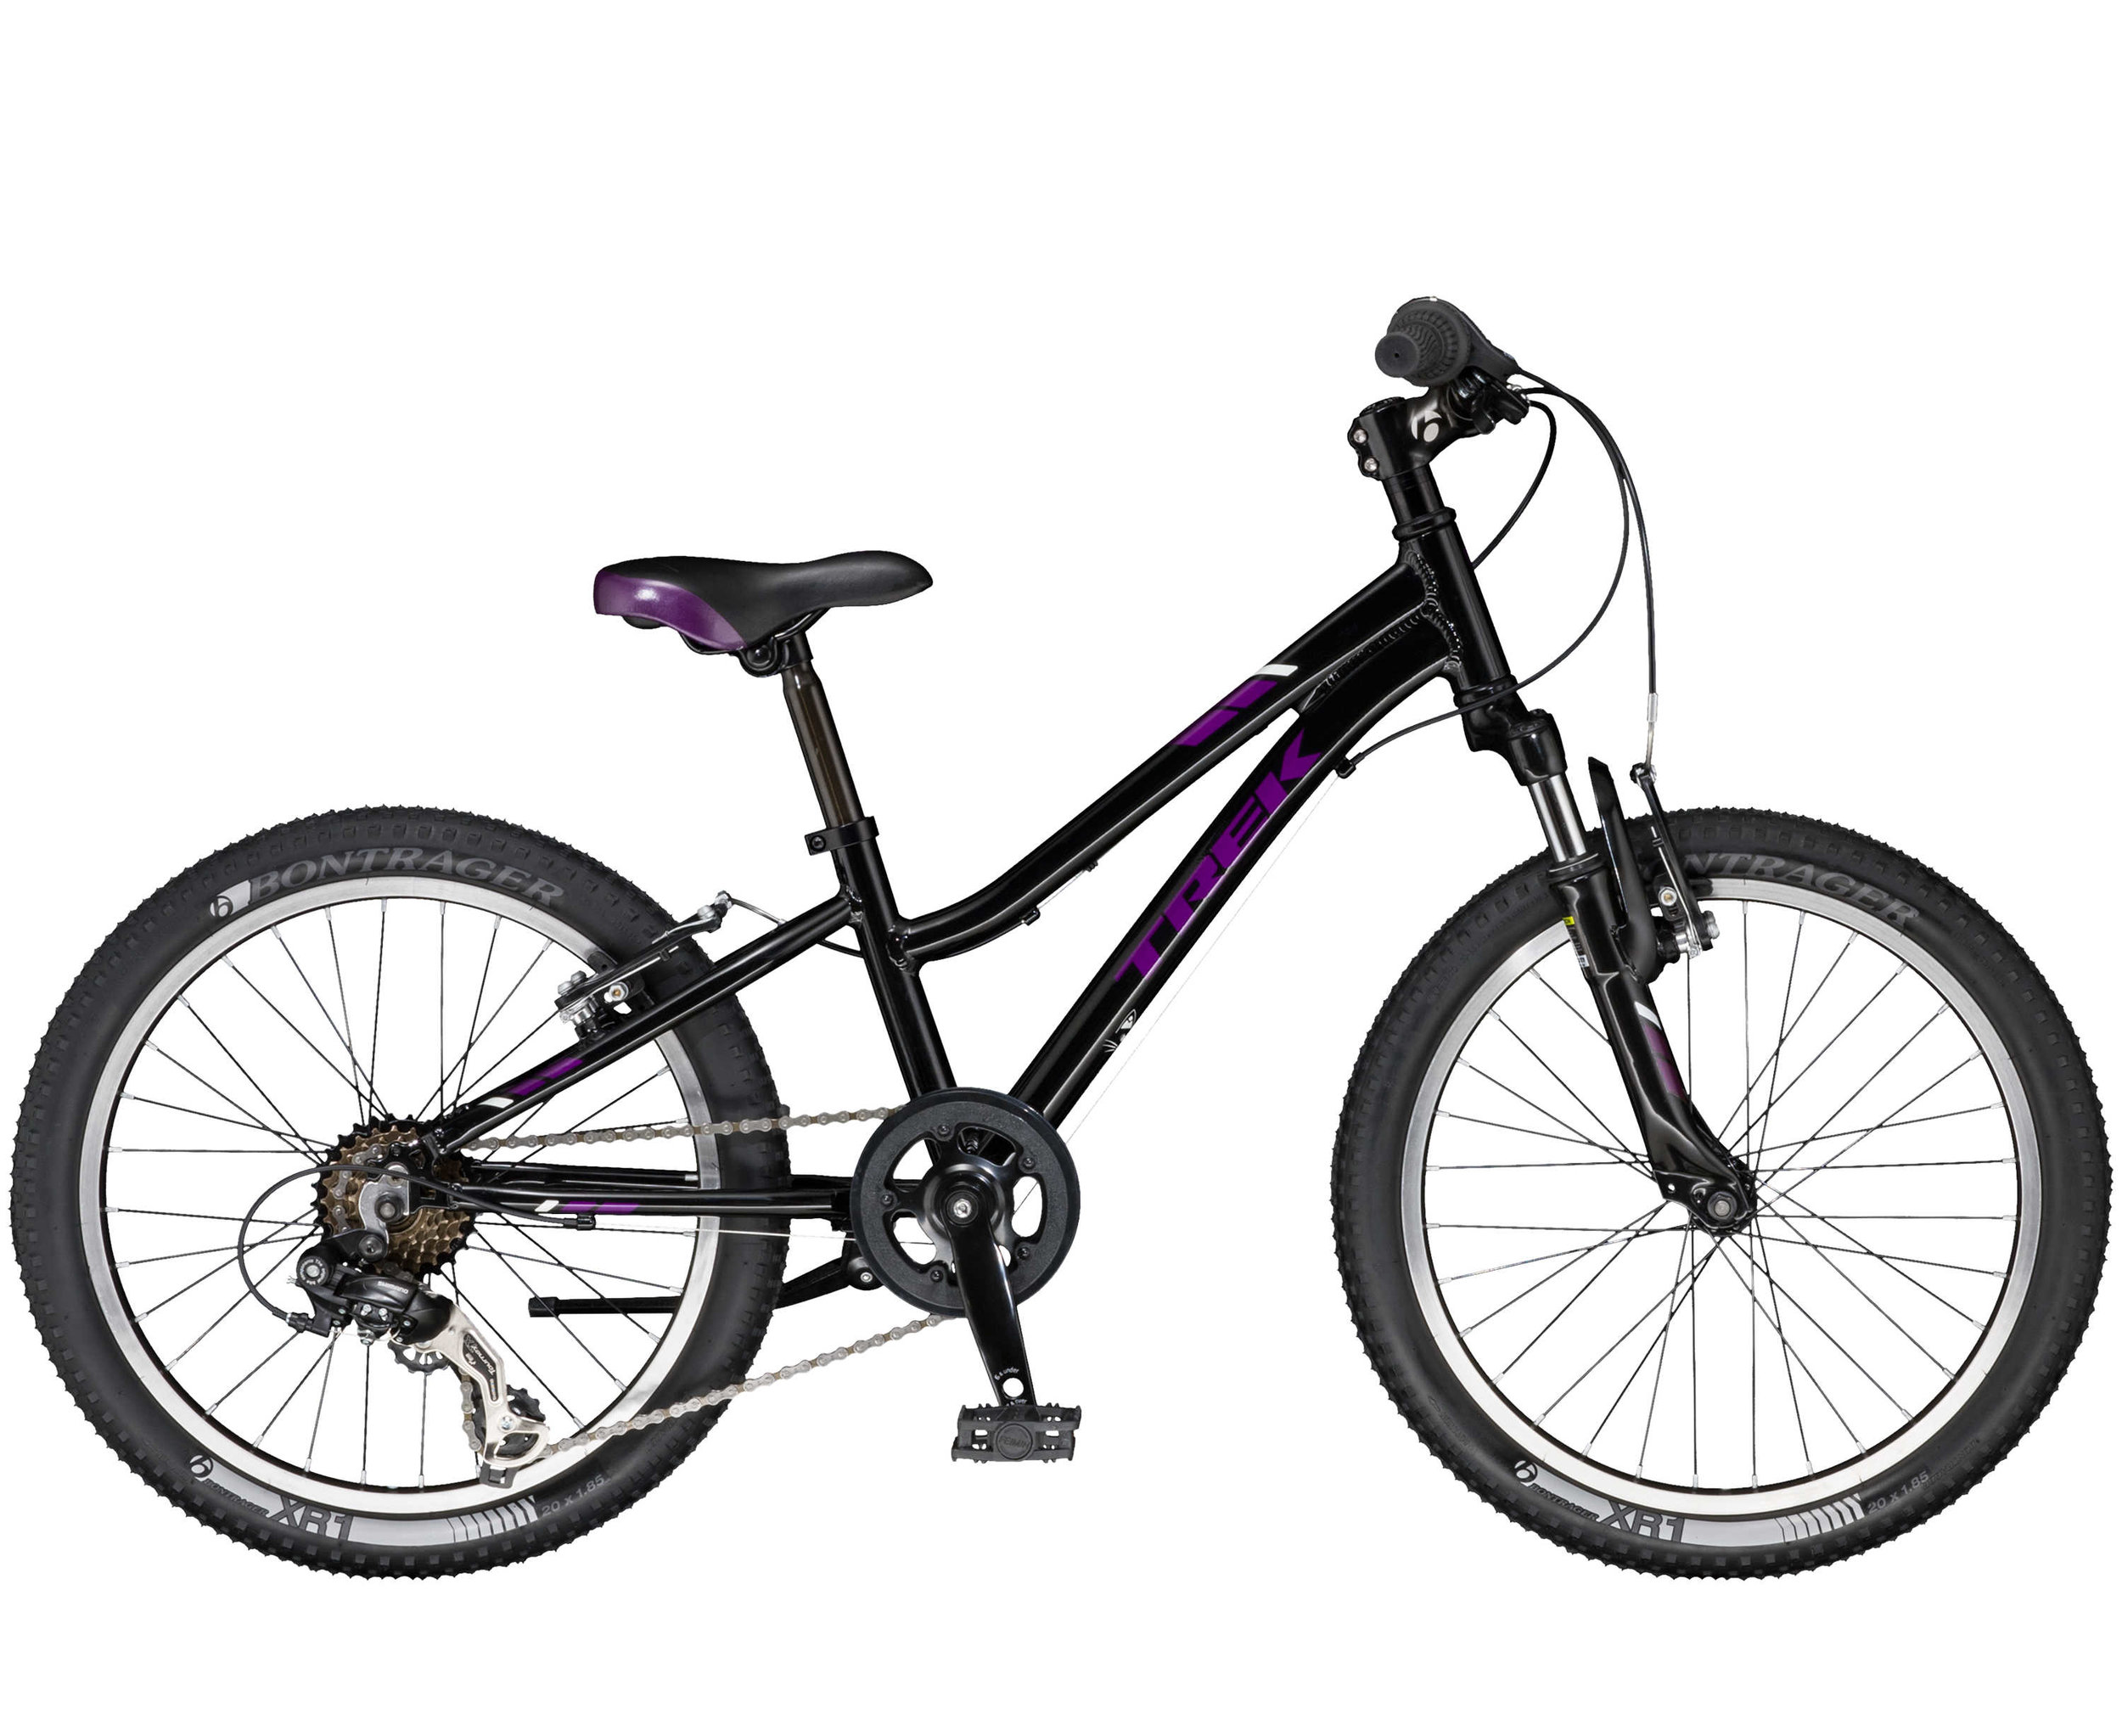 Precaliber 20 6-speed Girl's is a kid's mountain bike for young adventurers. A lightweight frame, knobby tires, and quality components like a front suspension fork, 6-speed gearing, and hand brakes are perfectly dialed to better fit small riders. For kids ages 6-8, between 45-52˝ tall.